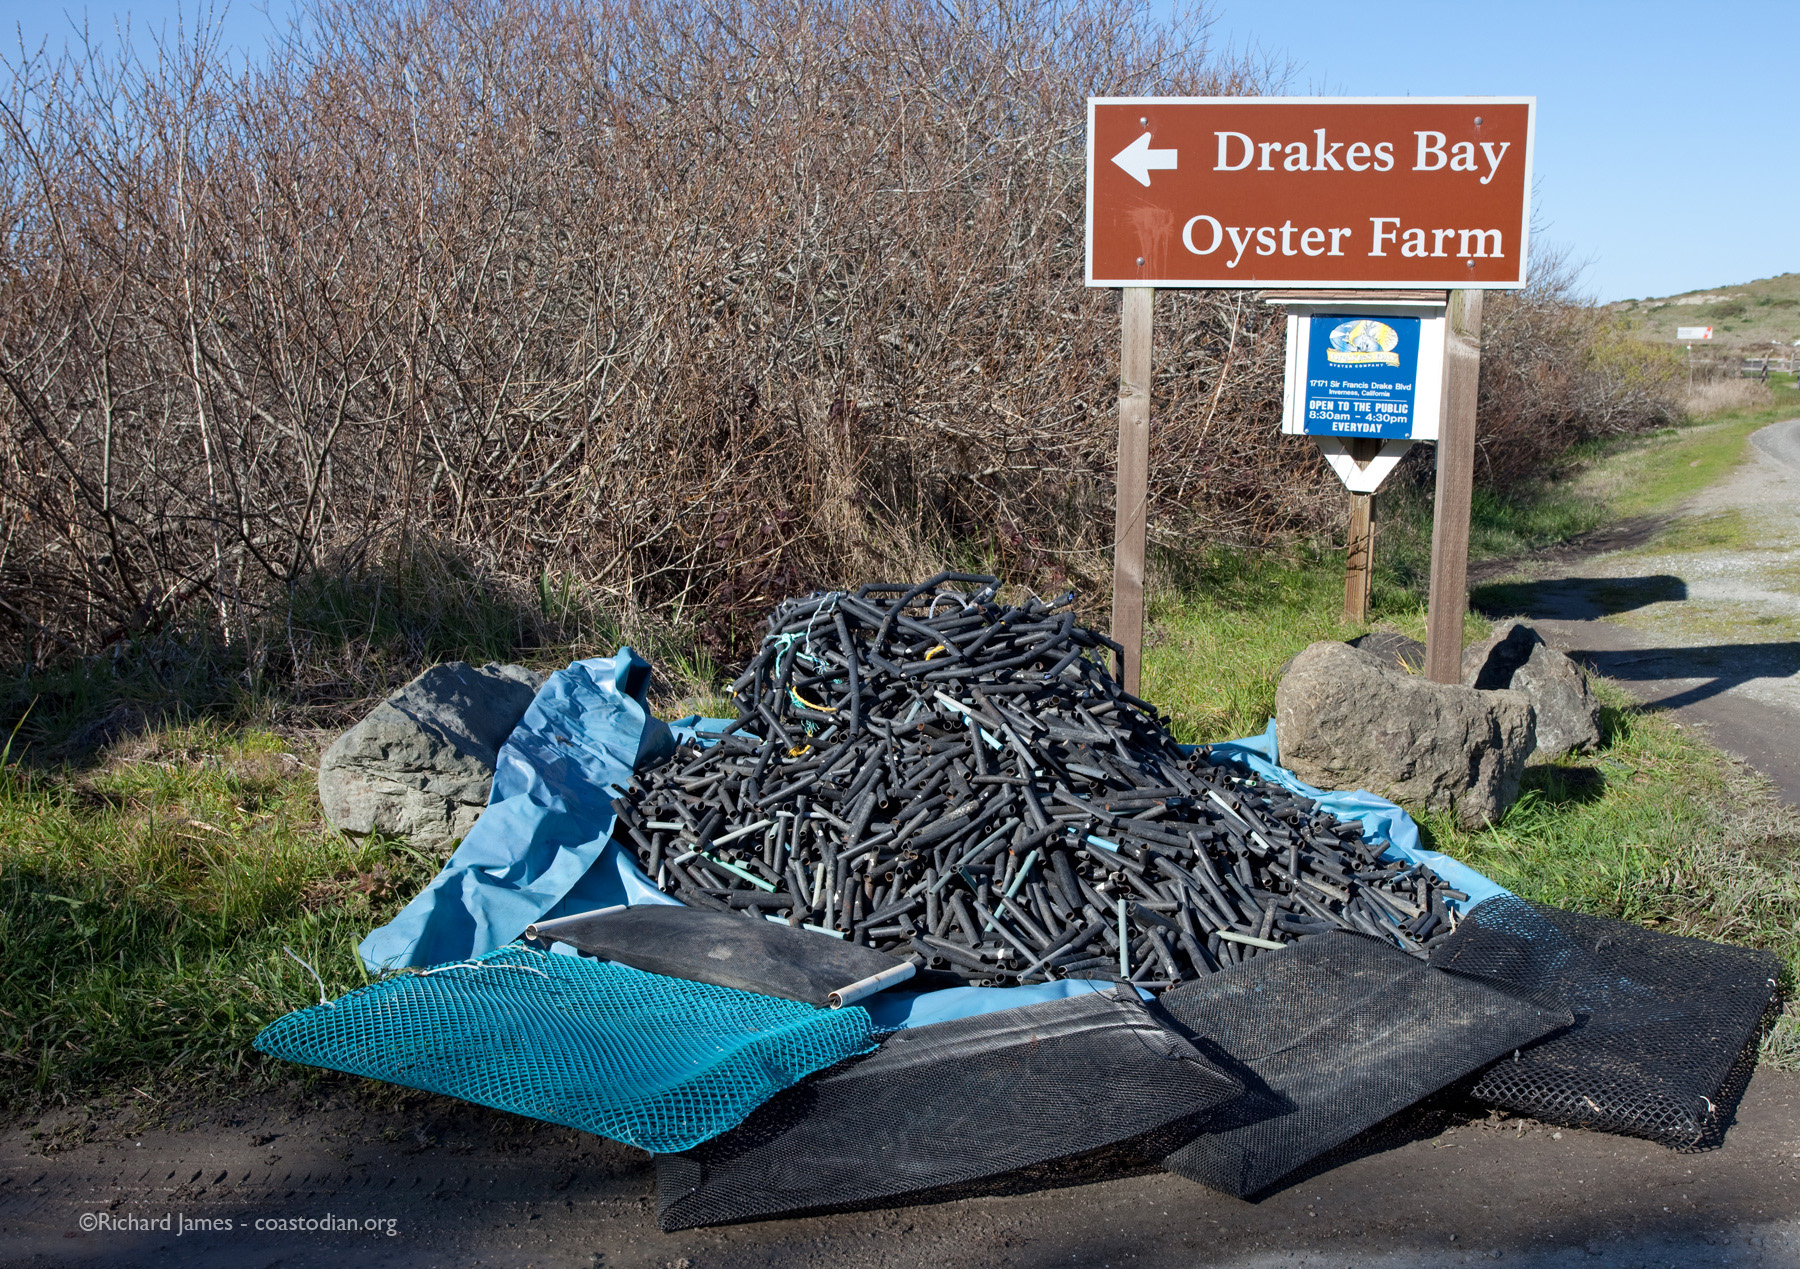 Sustainable oyster farming, West Marin style. Click image to see larger version.